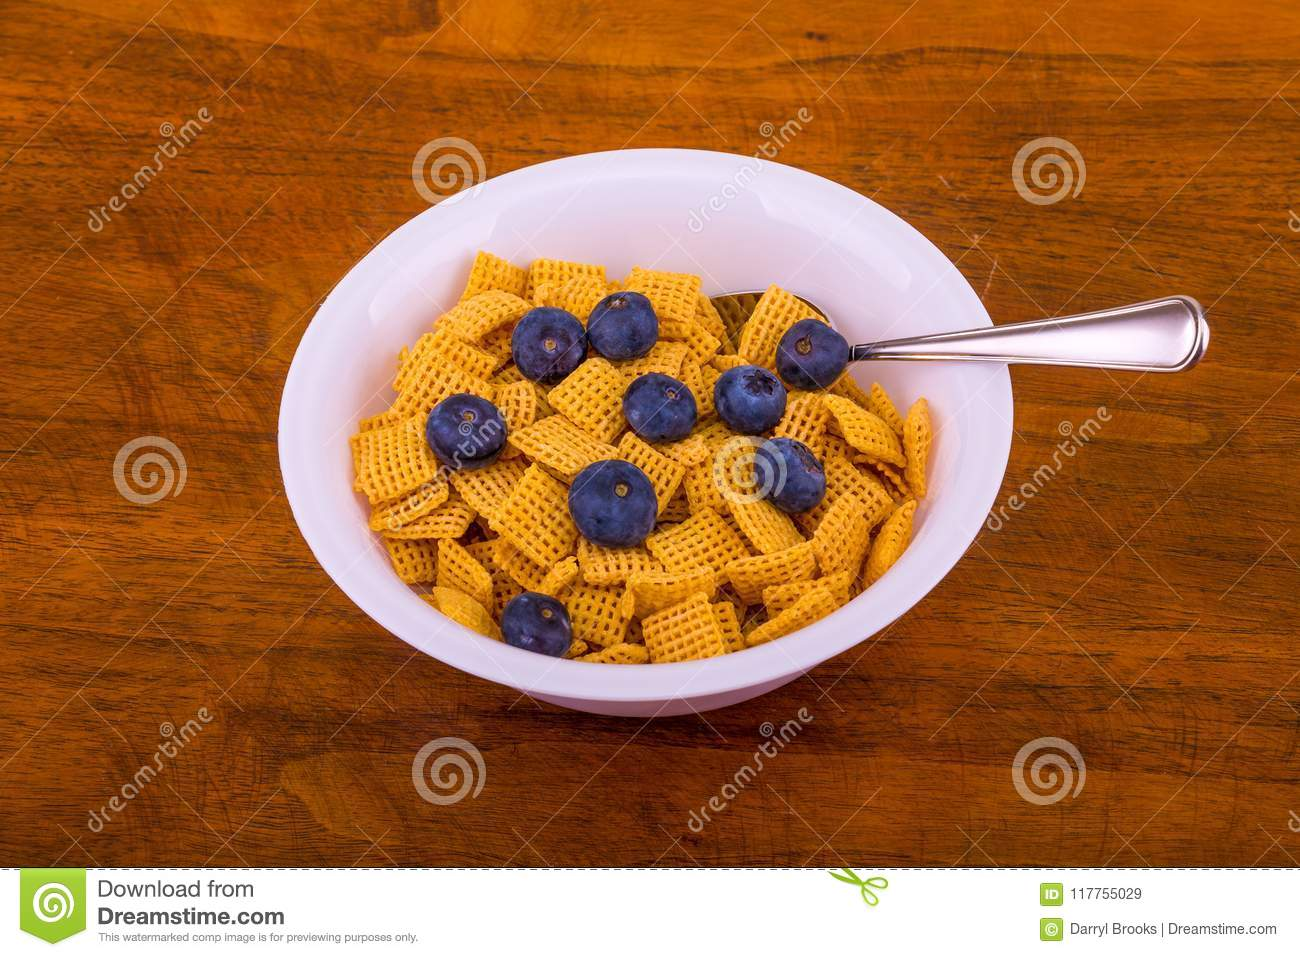 Crunchy Corn Cereal with Blueberries